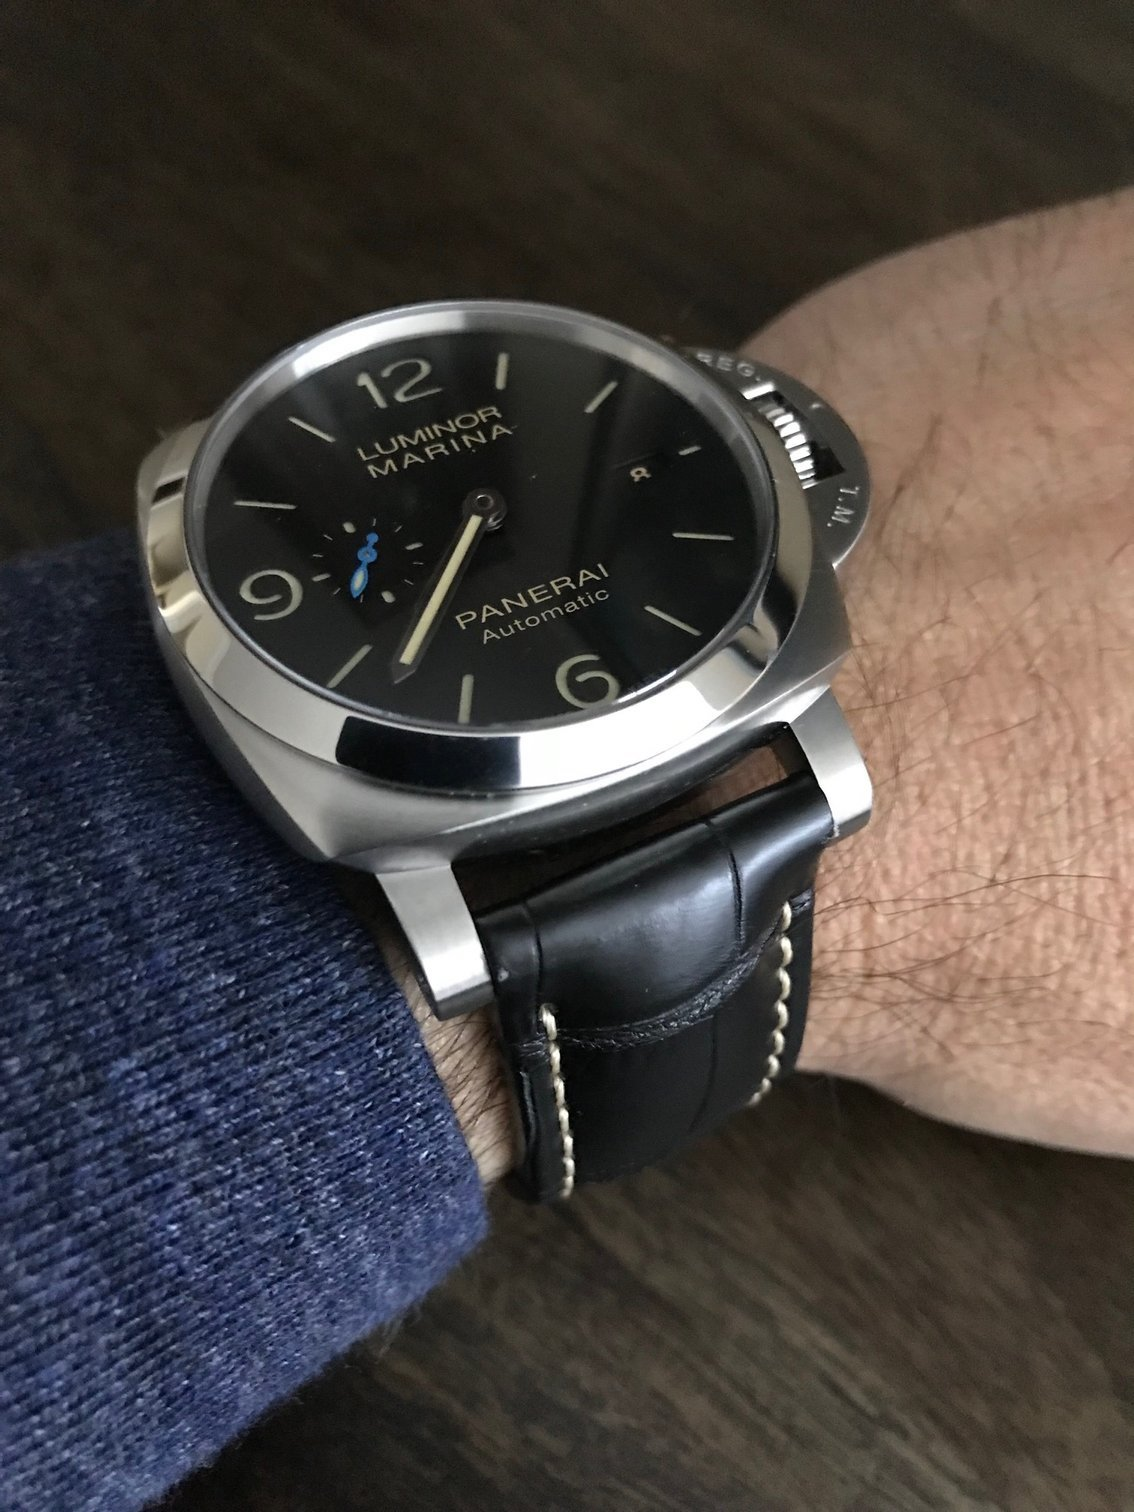 Panerai Perfected Watches Stemming From A Passion For The Sea